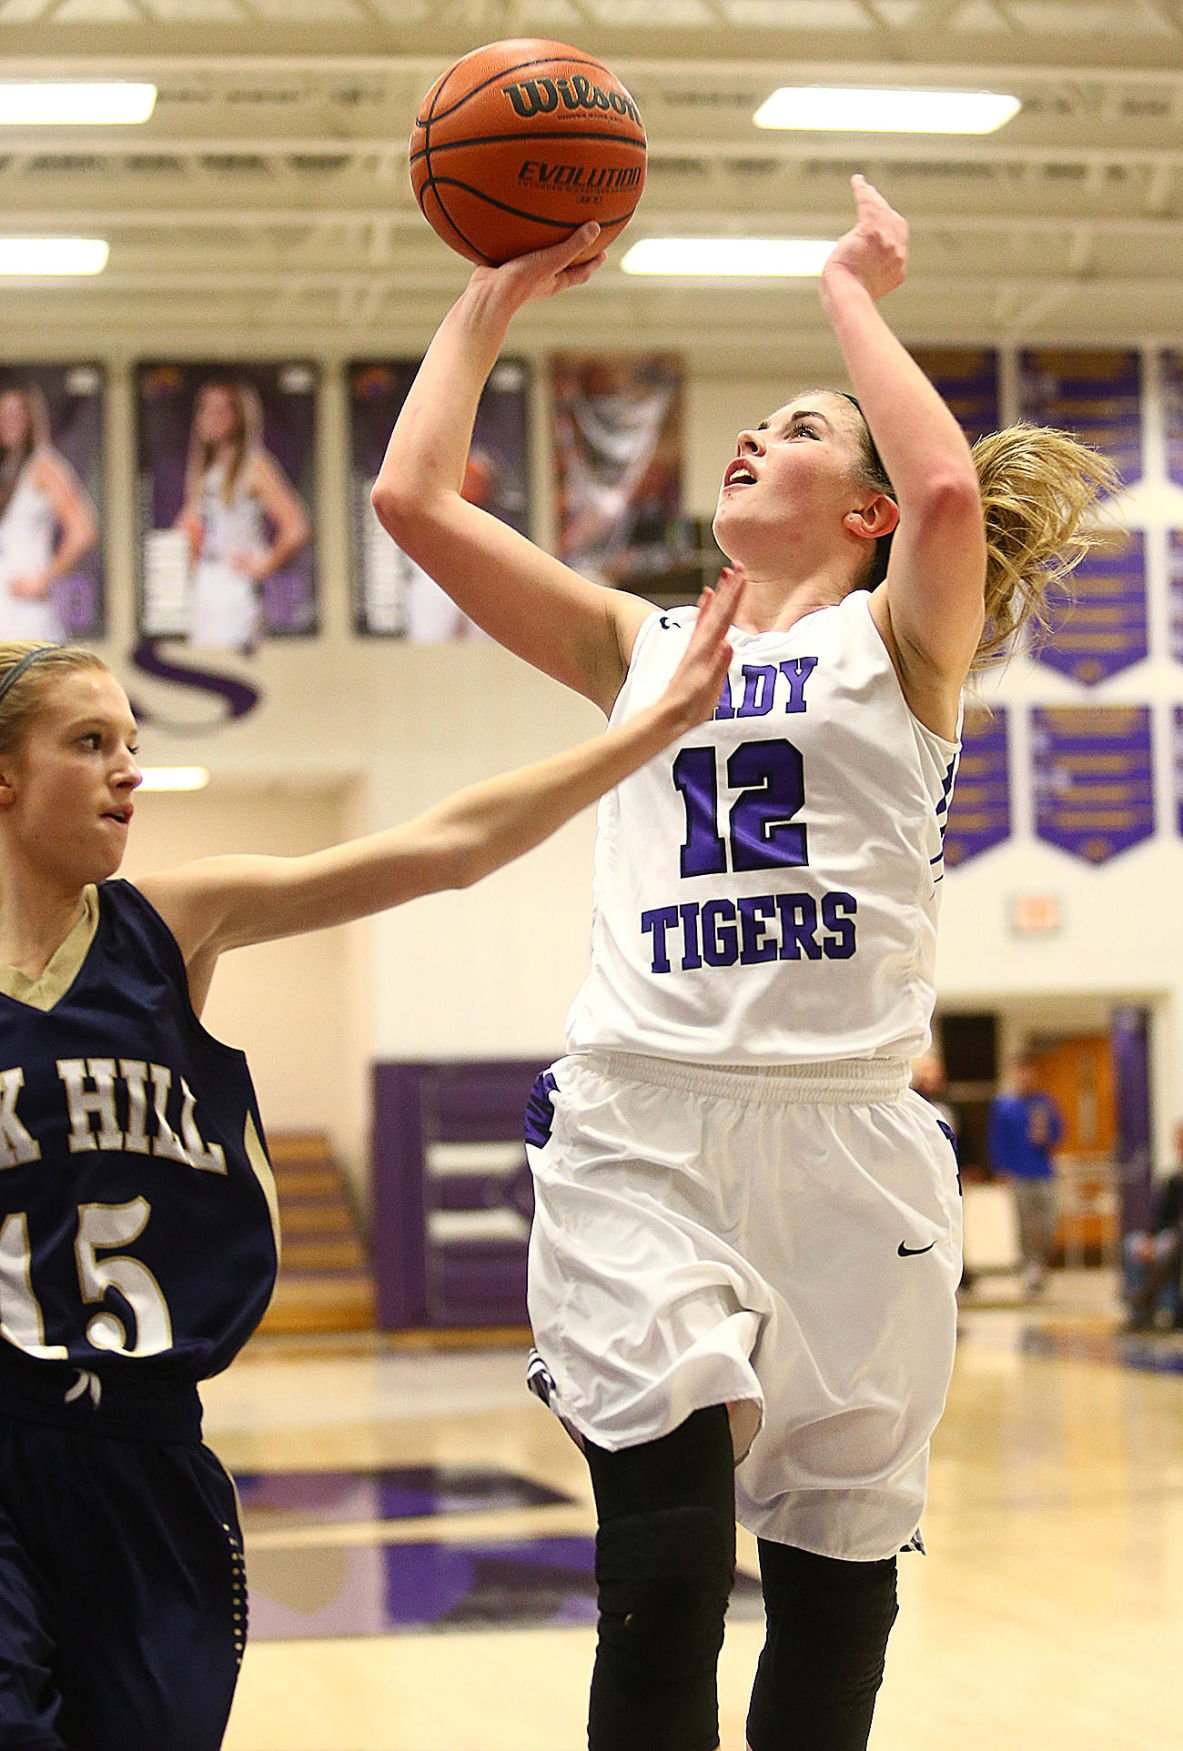 oak hill girls View the schedule, scores, league standings, rankings, roster and articles for the oak hill oaks girls basketball team on maxpreps.